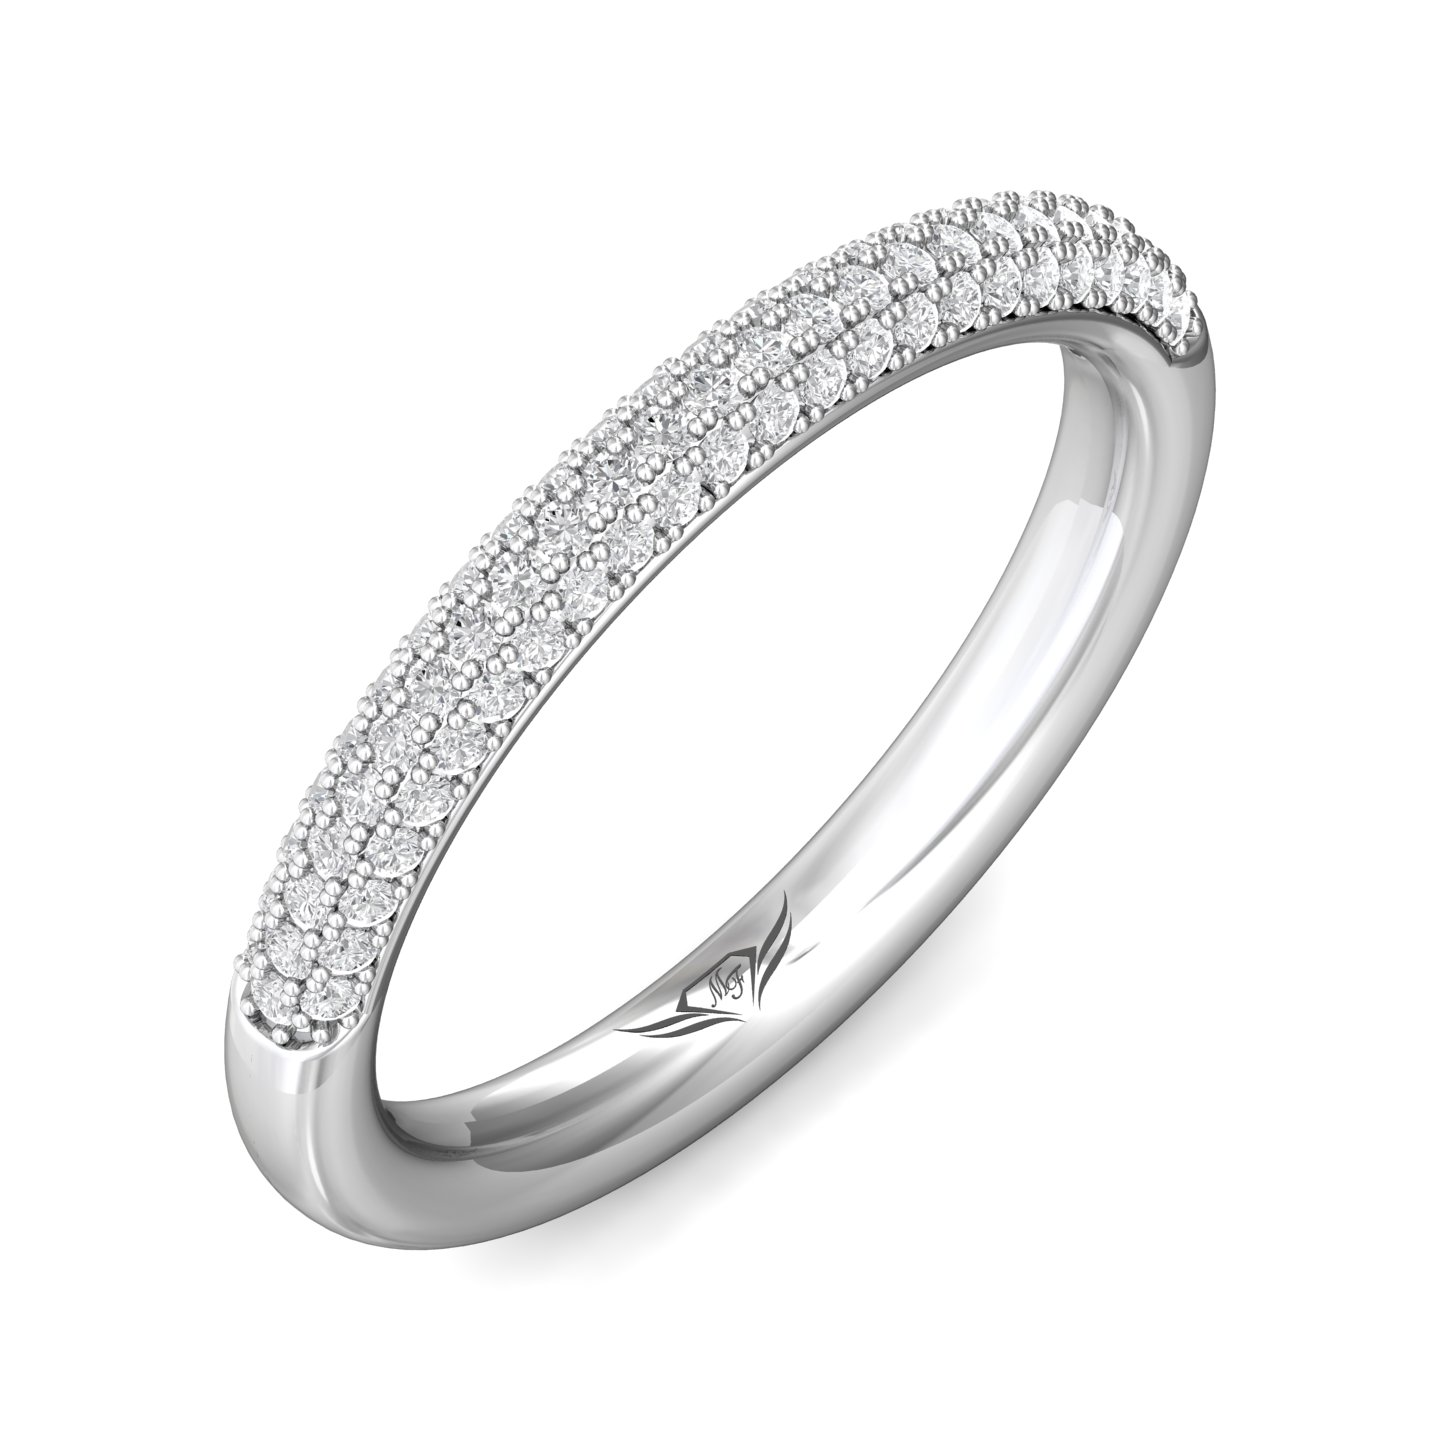 Rings - 14K White Gold FlyerFit Micropave Wedding Band - image #5